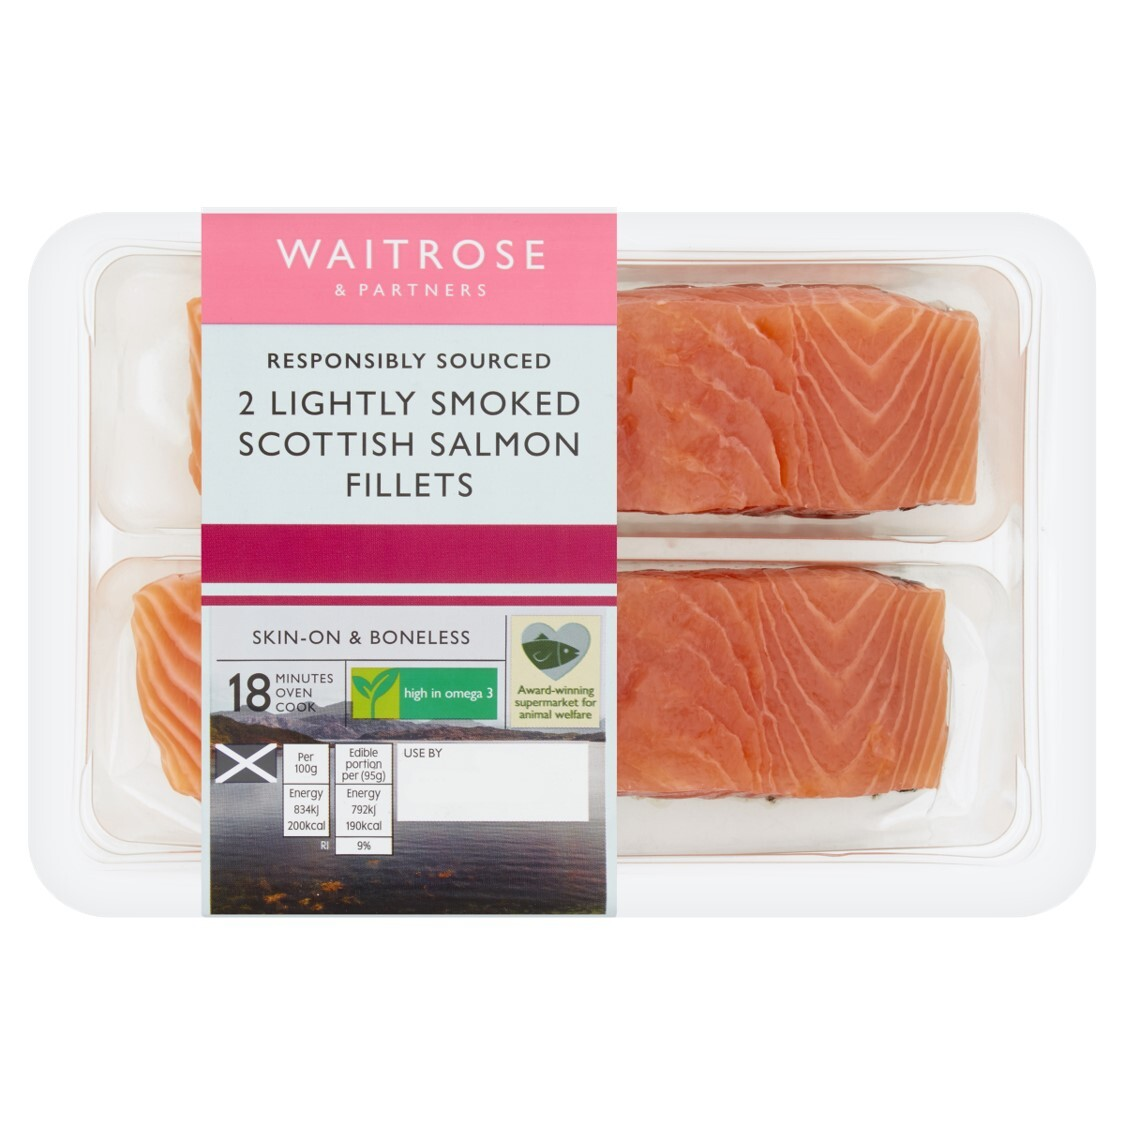 2 Lightly Smoked Scottish Salmon Fillets